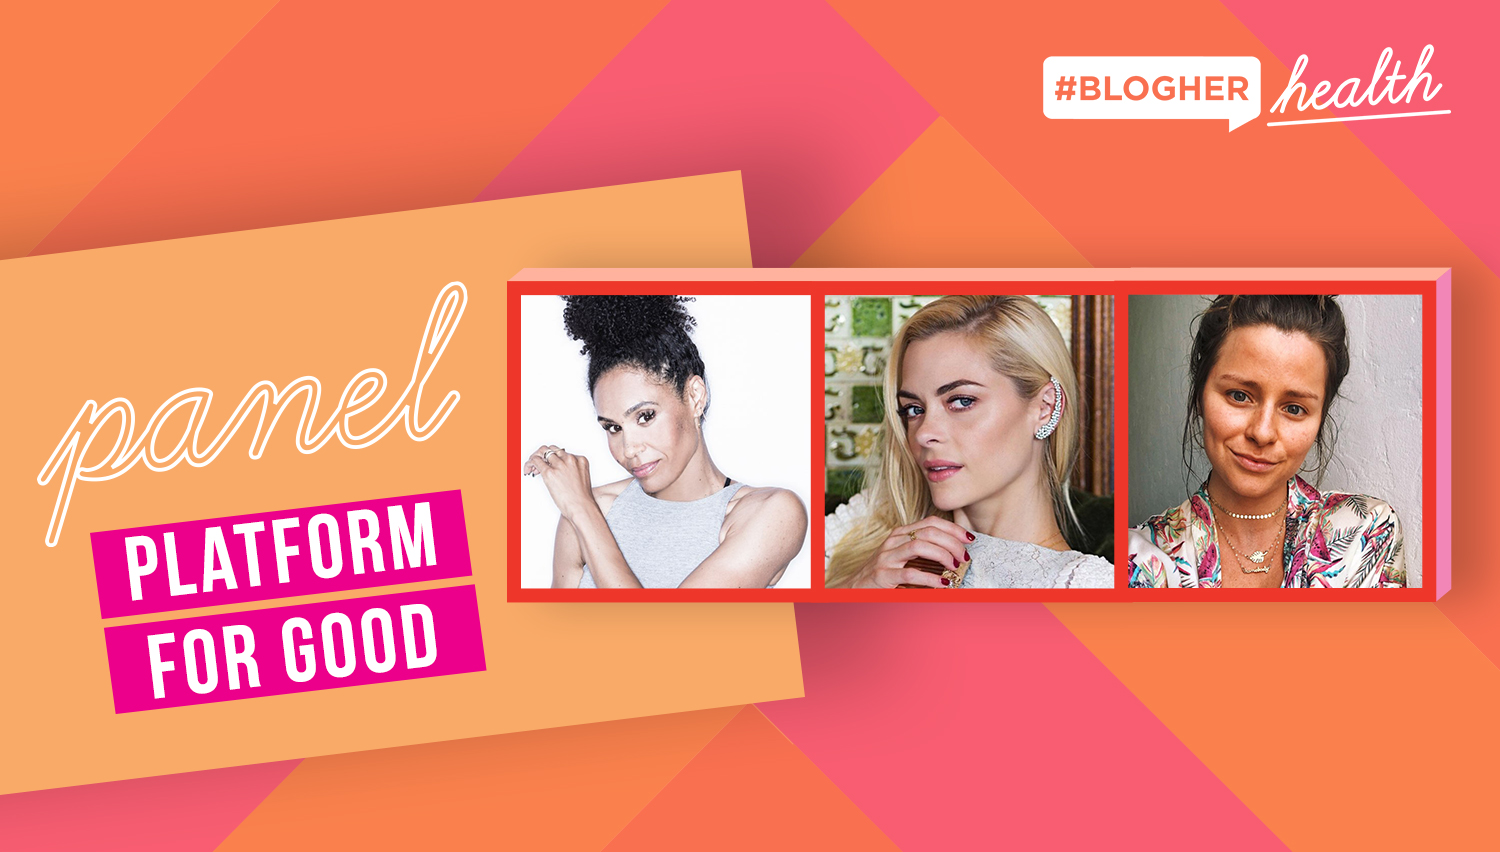 Platform For Good - Jaime King is joined by Angela Davis and Lee Tilghman to share how they use their platforms to amplify women's issues in health and wellness.